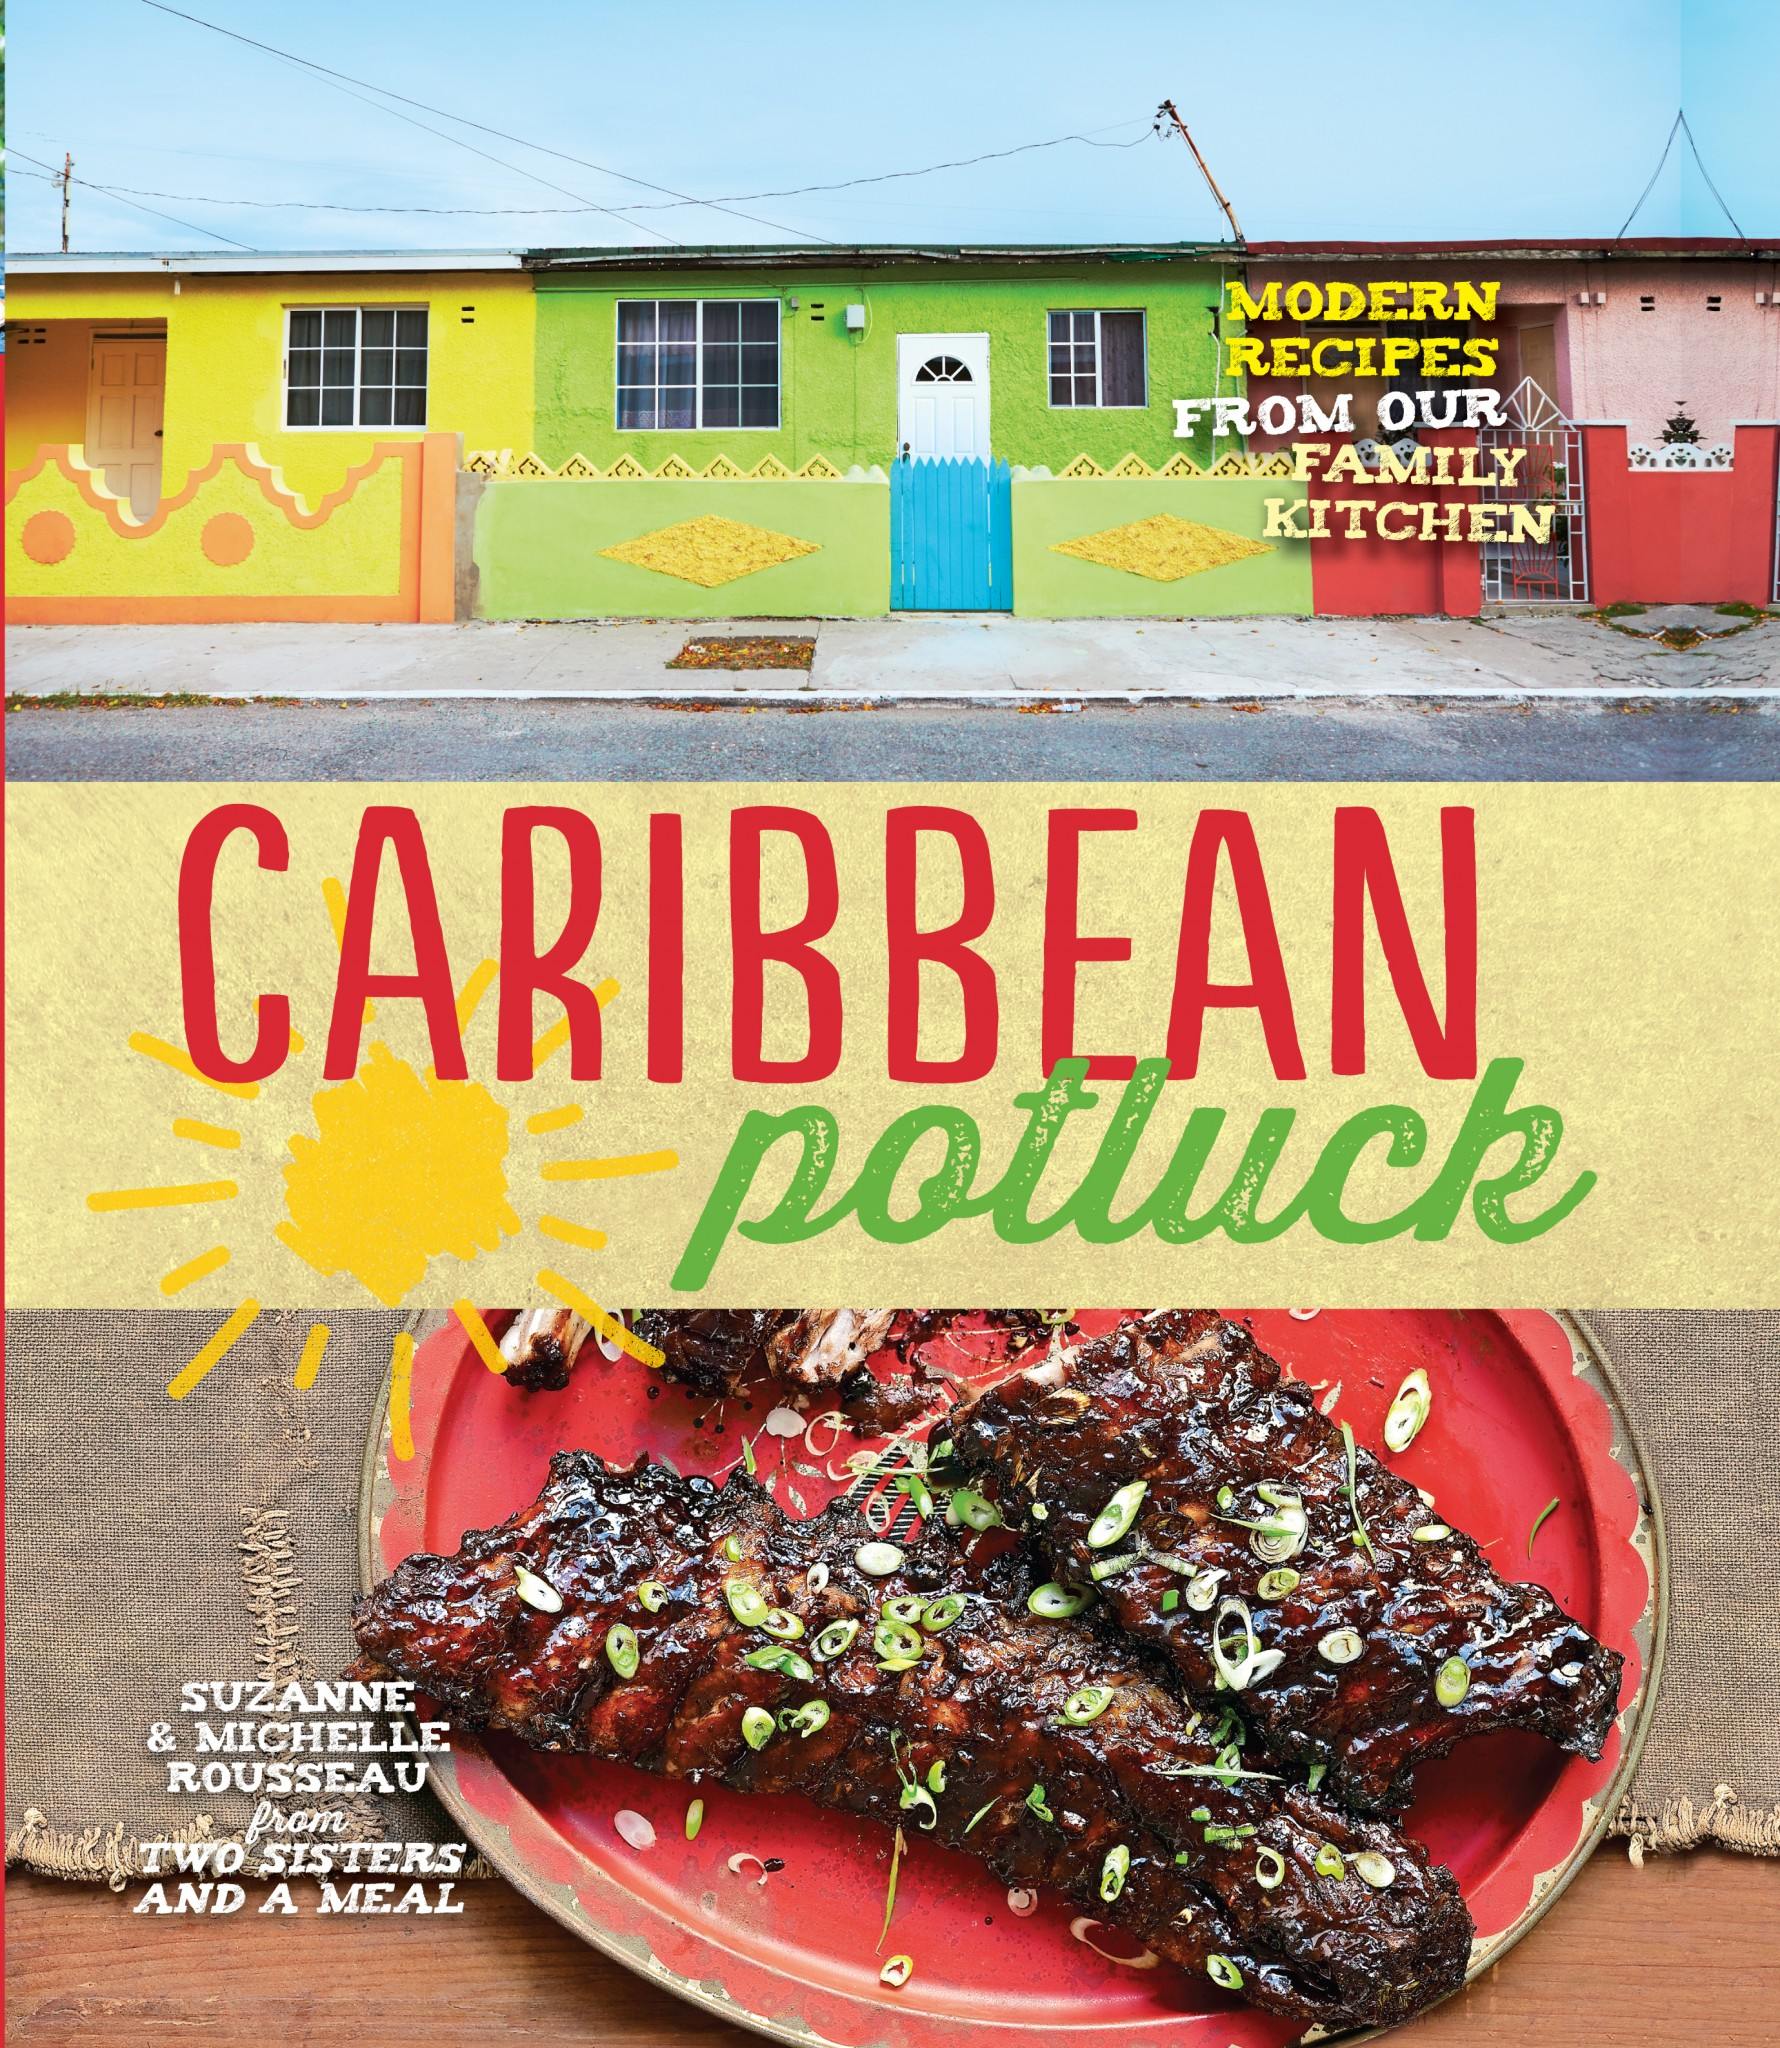 Caribbean Potluck - Modern Recipes from Our Family Kitchen. Photo Credit: ©Kyle Books